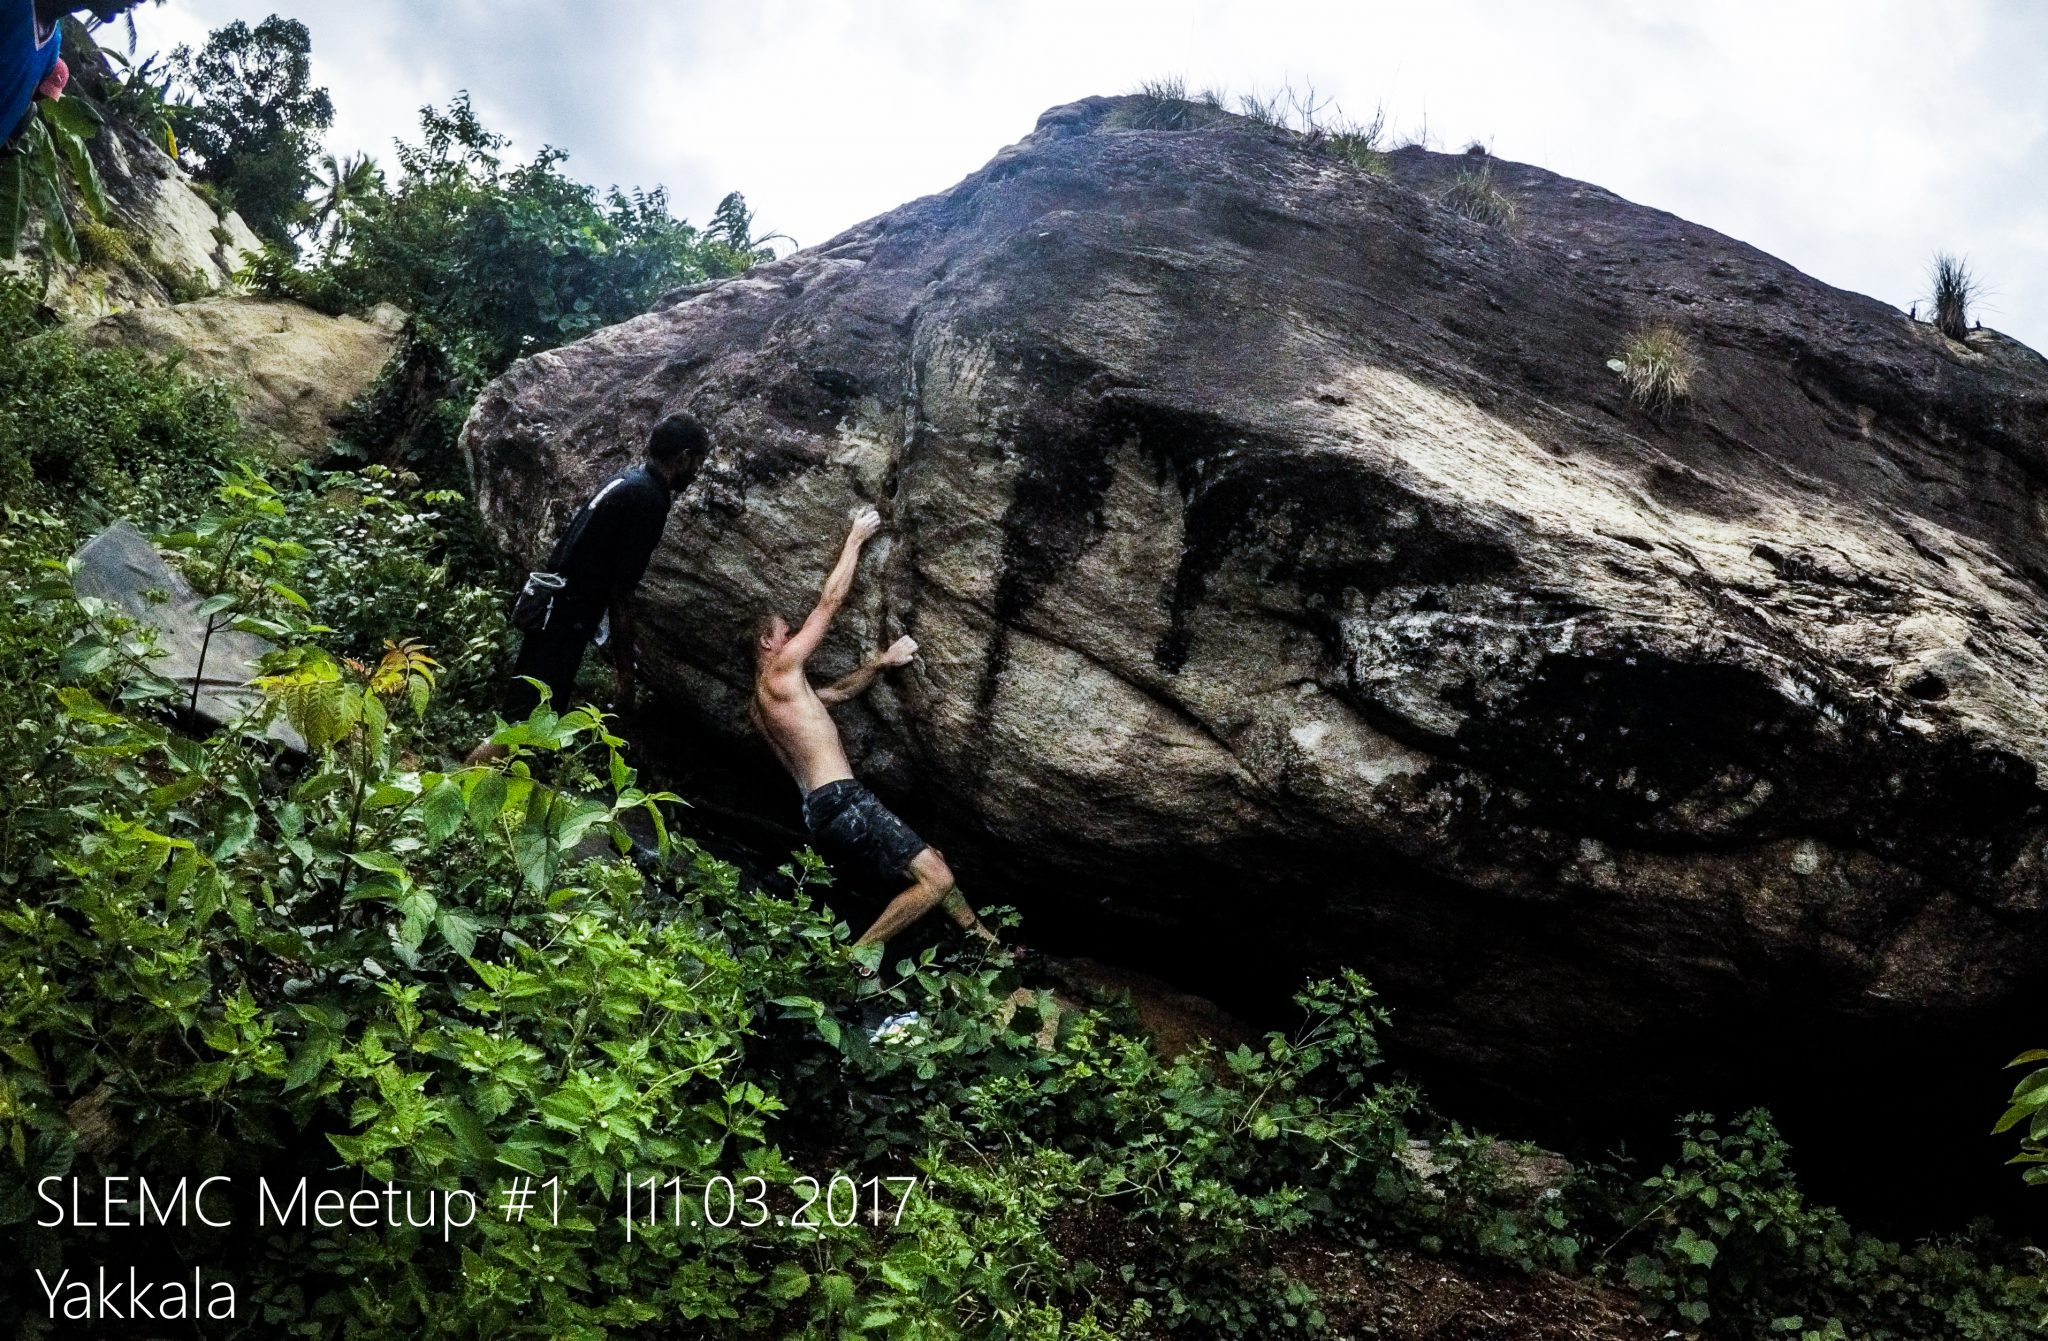 Rock climbing/ bouldering in Sri Lanka - Climbers meet up